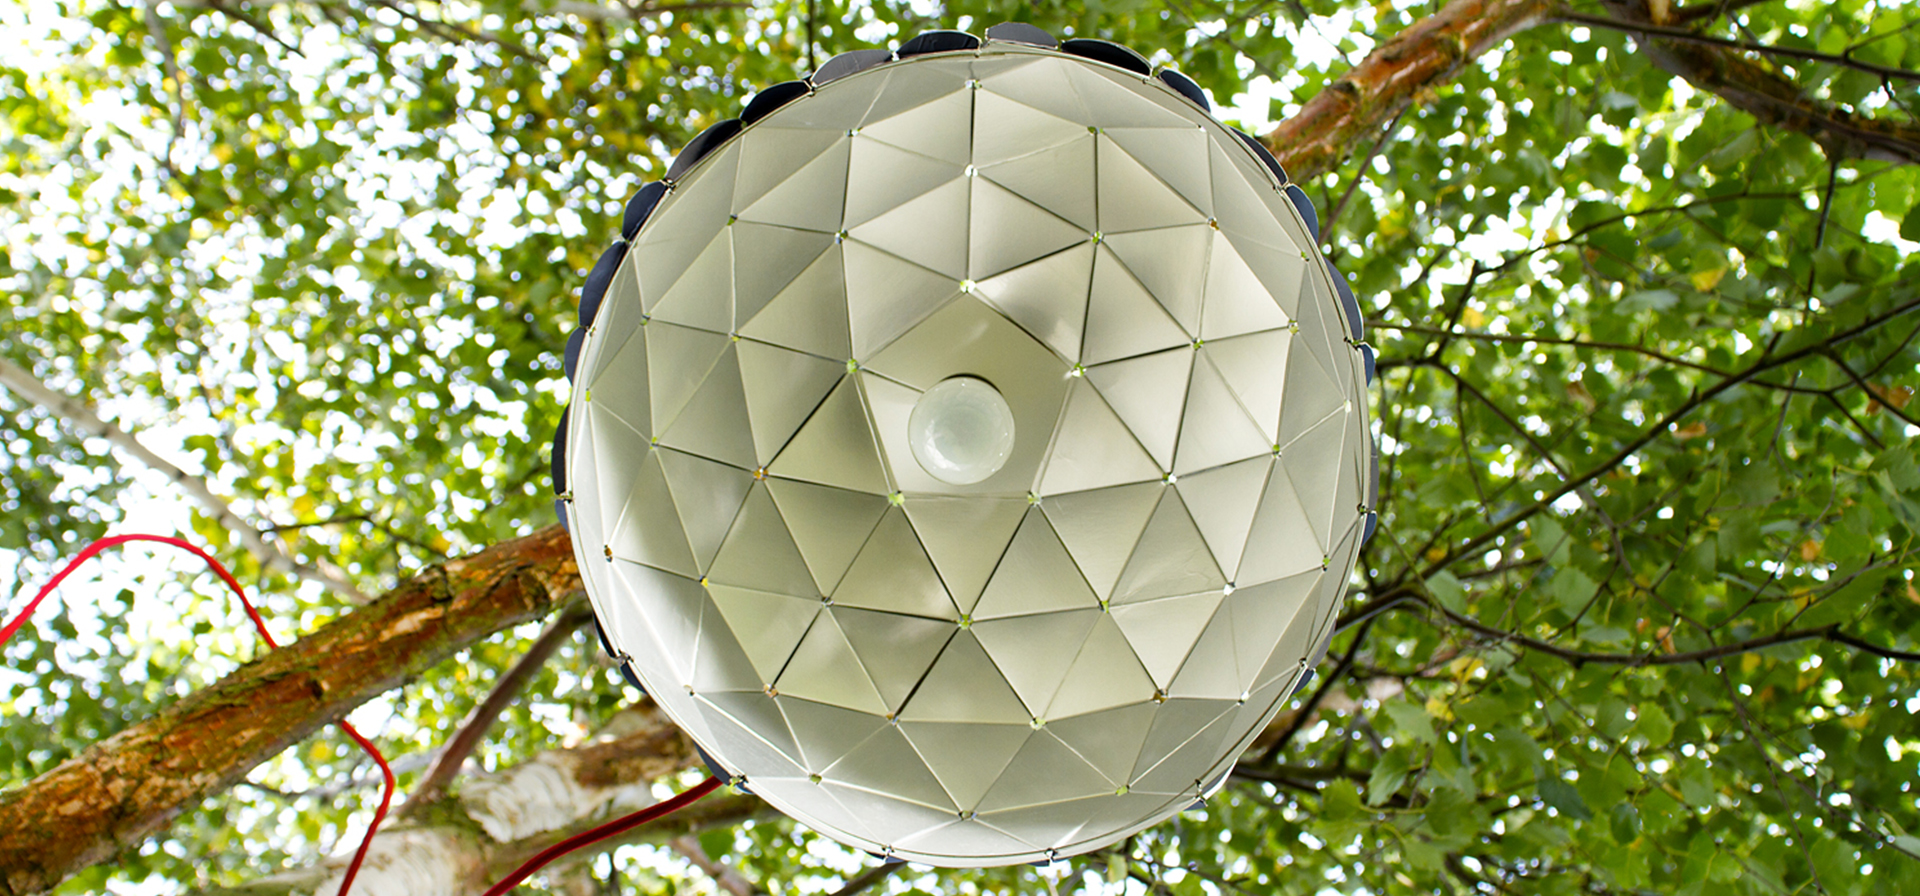 unistudio_merci_lampe_recyclee_design_image-de-communication_04